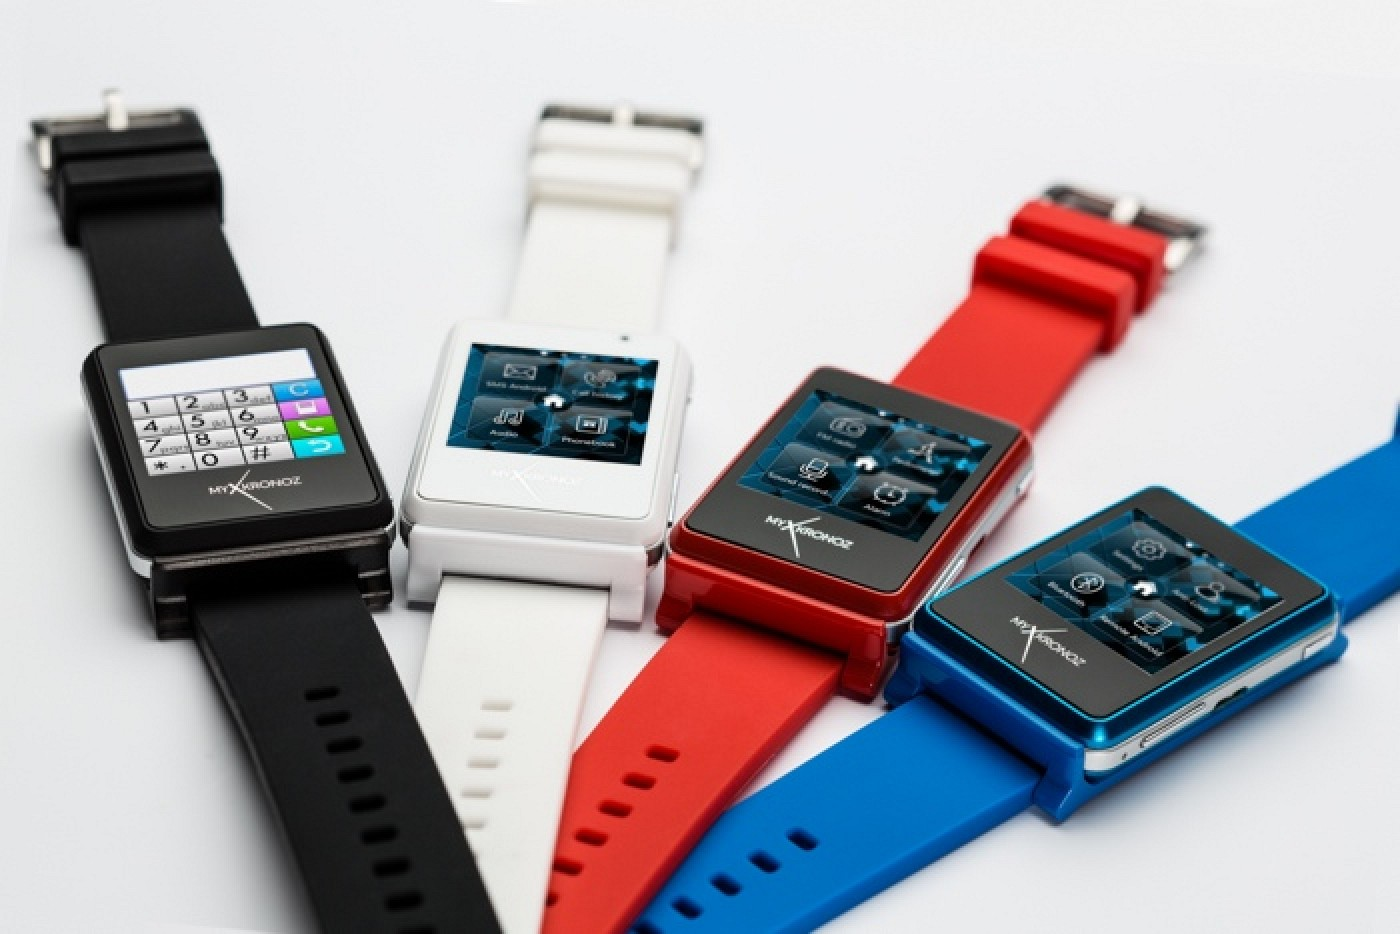 youtube watches now smart fashion wearable tech watch best buy apple sells